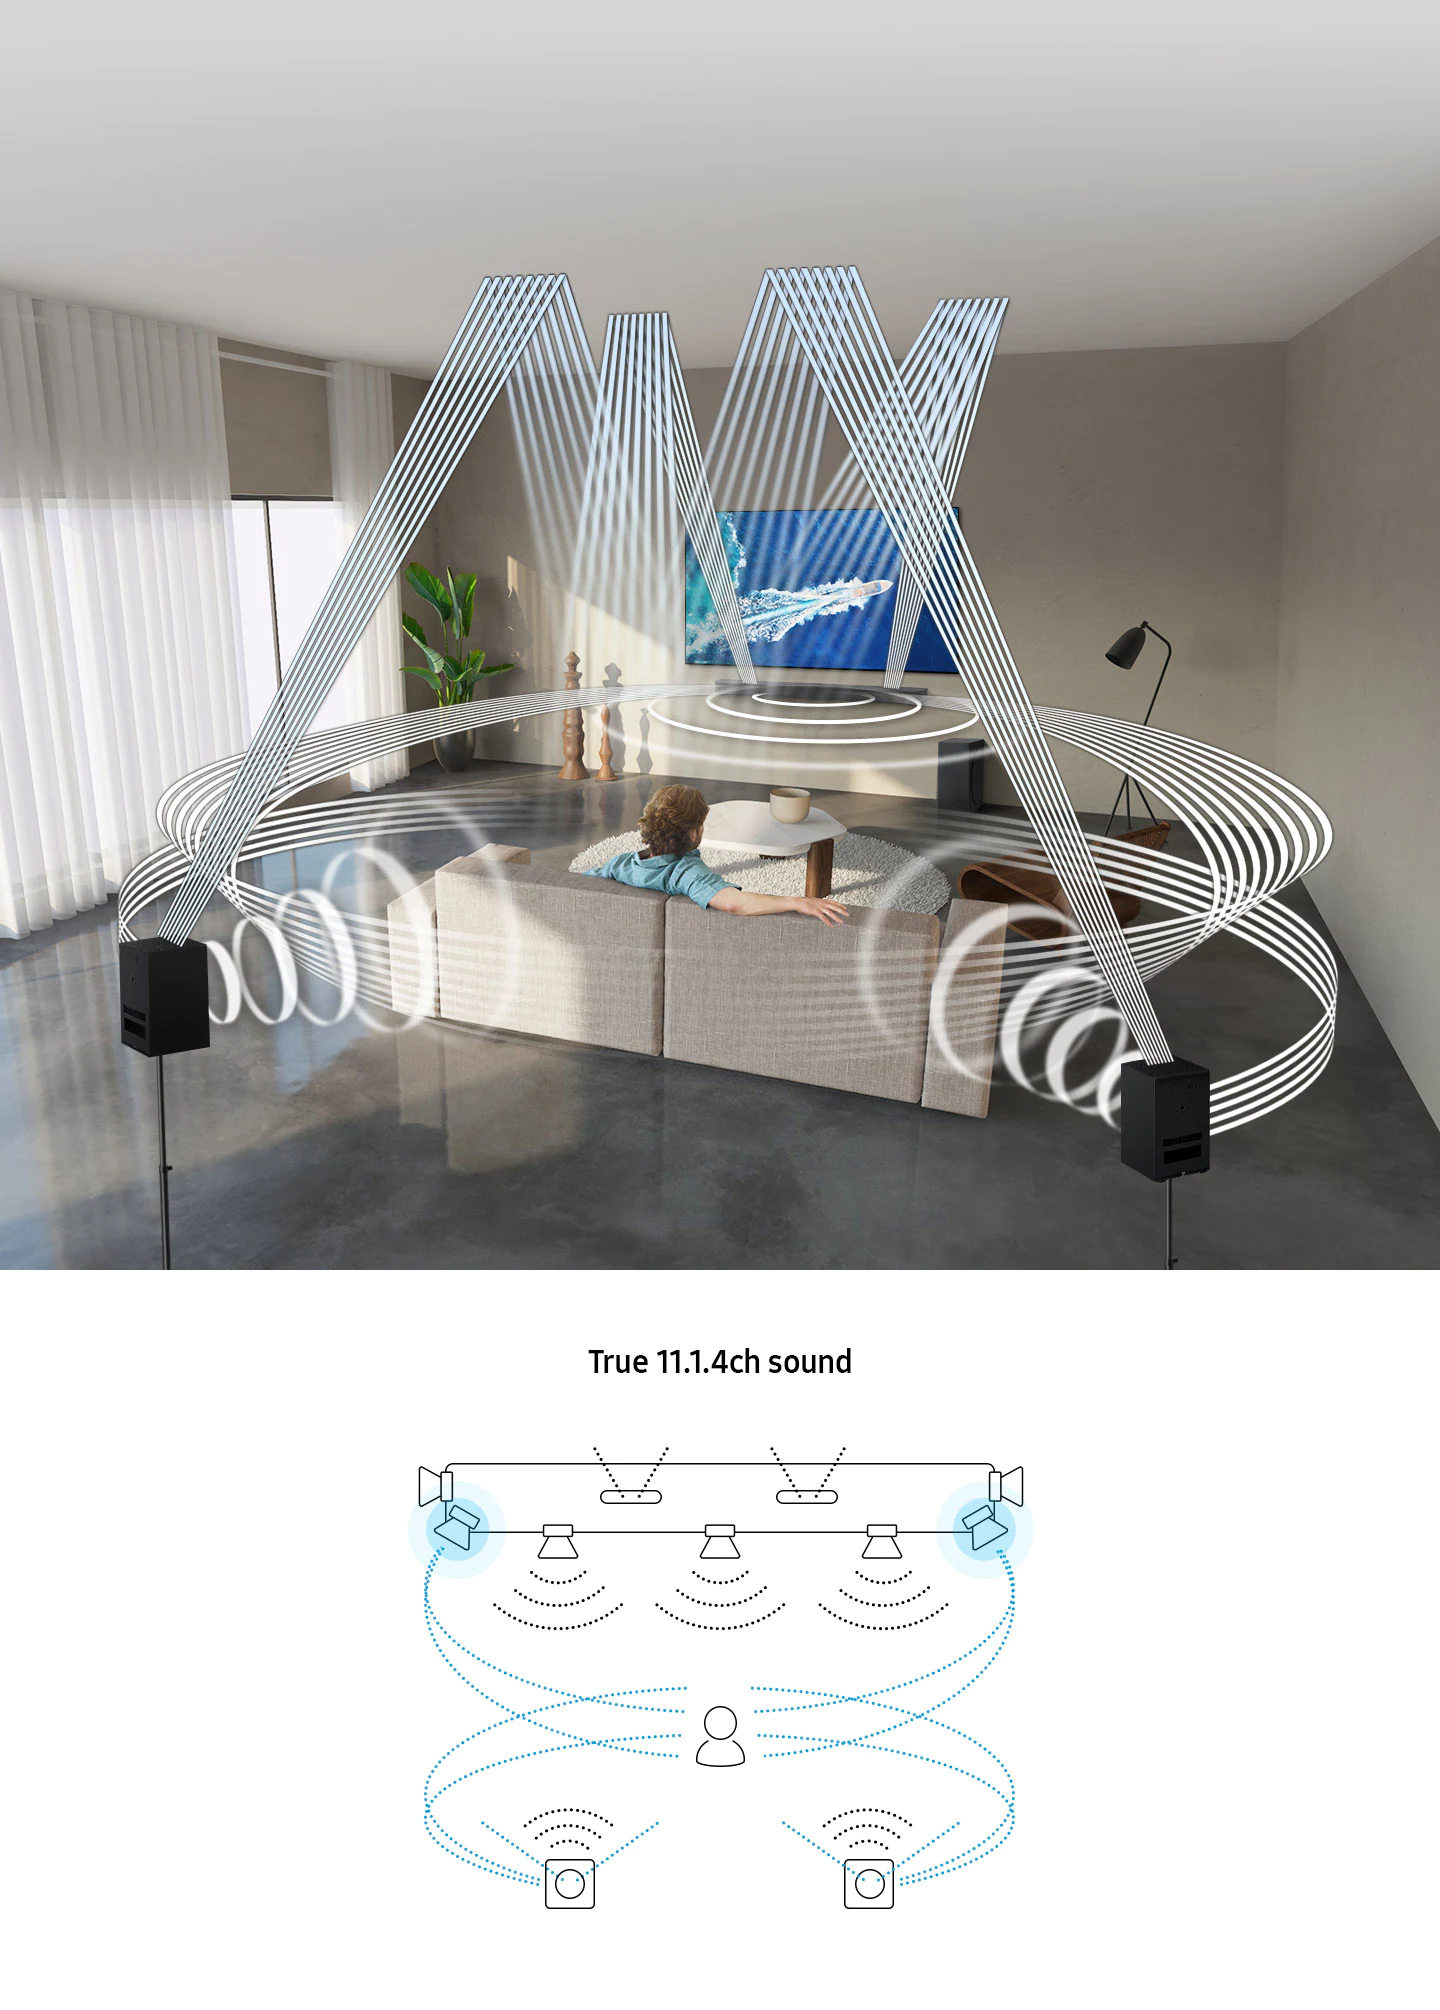 A man is surrounded by sound wave graphics, demonstrating Q950A's immersive surround sound. A detailed infographic below shows each sound location.